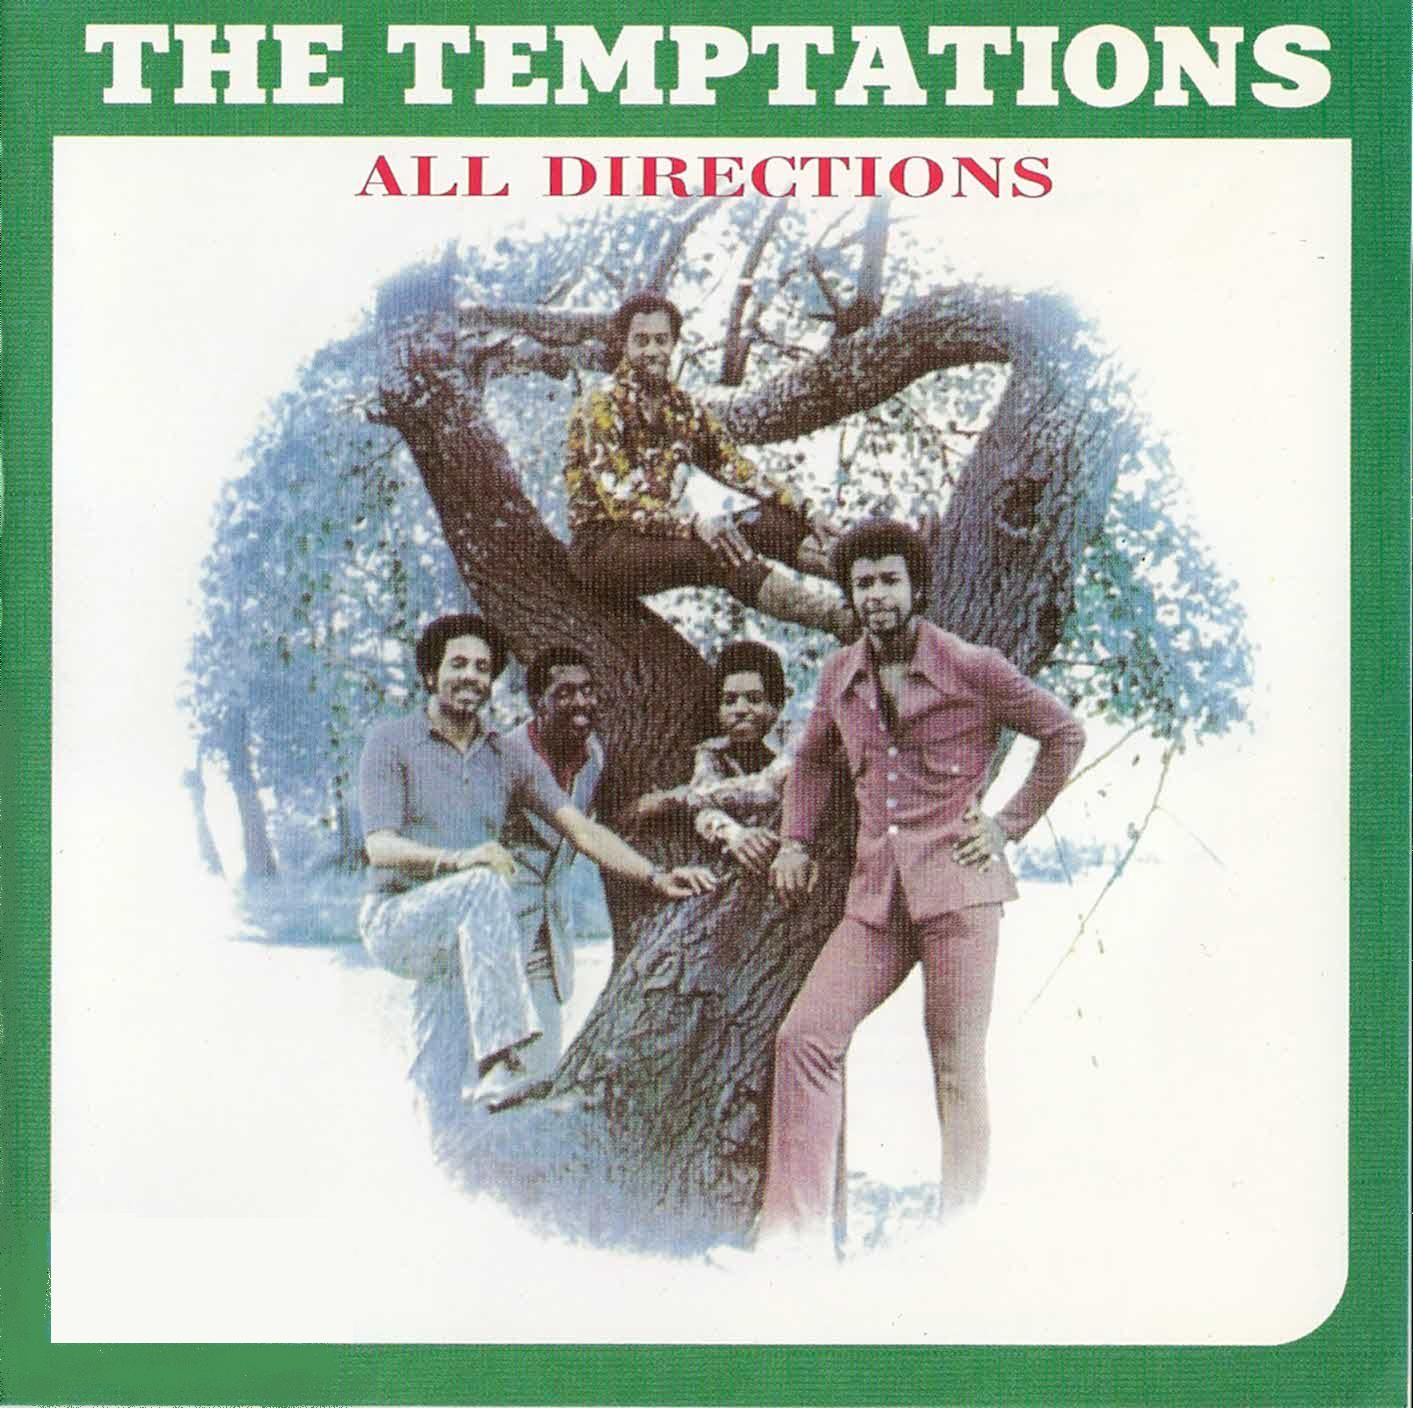 1972 The Temptations – All Directions